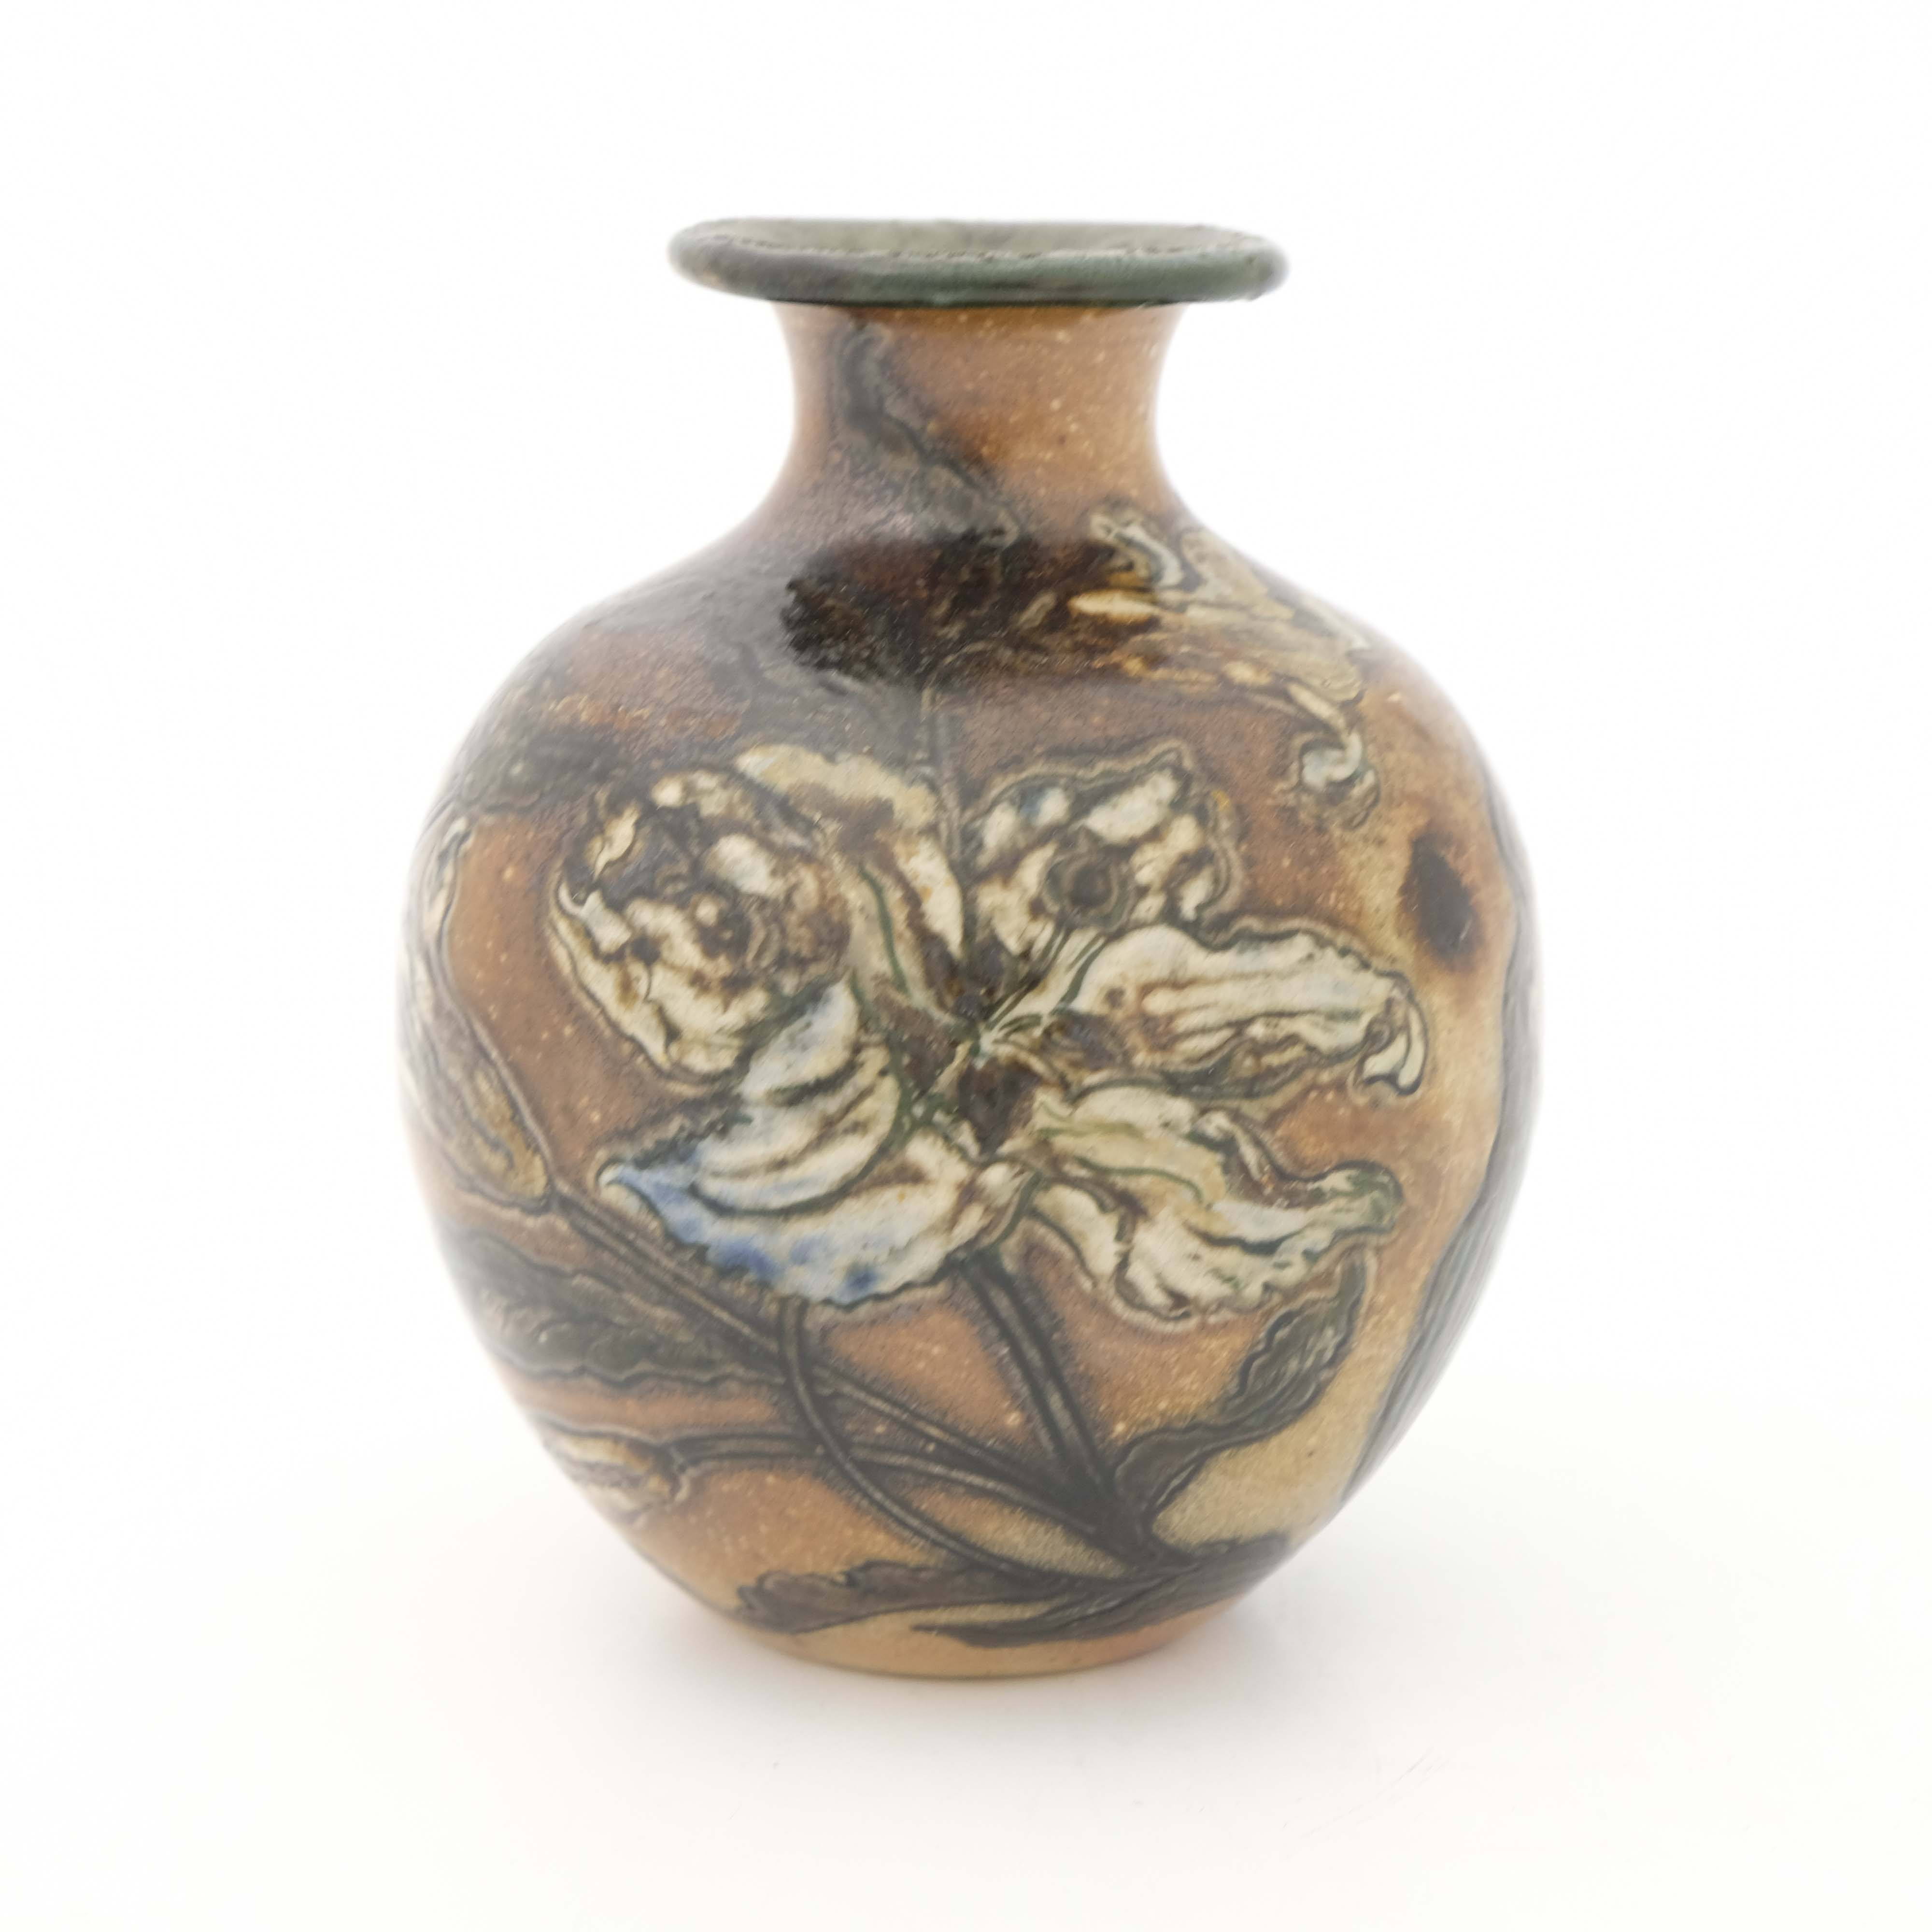 Edwin Martin for Martin Brothers, a stoneware vase - Image 3 of 5